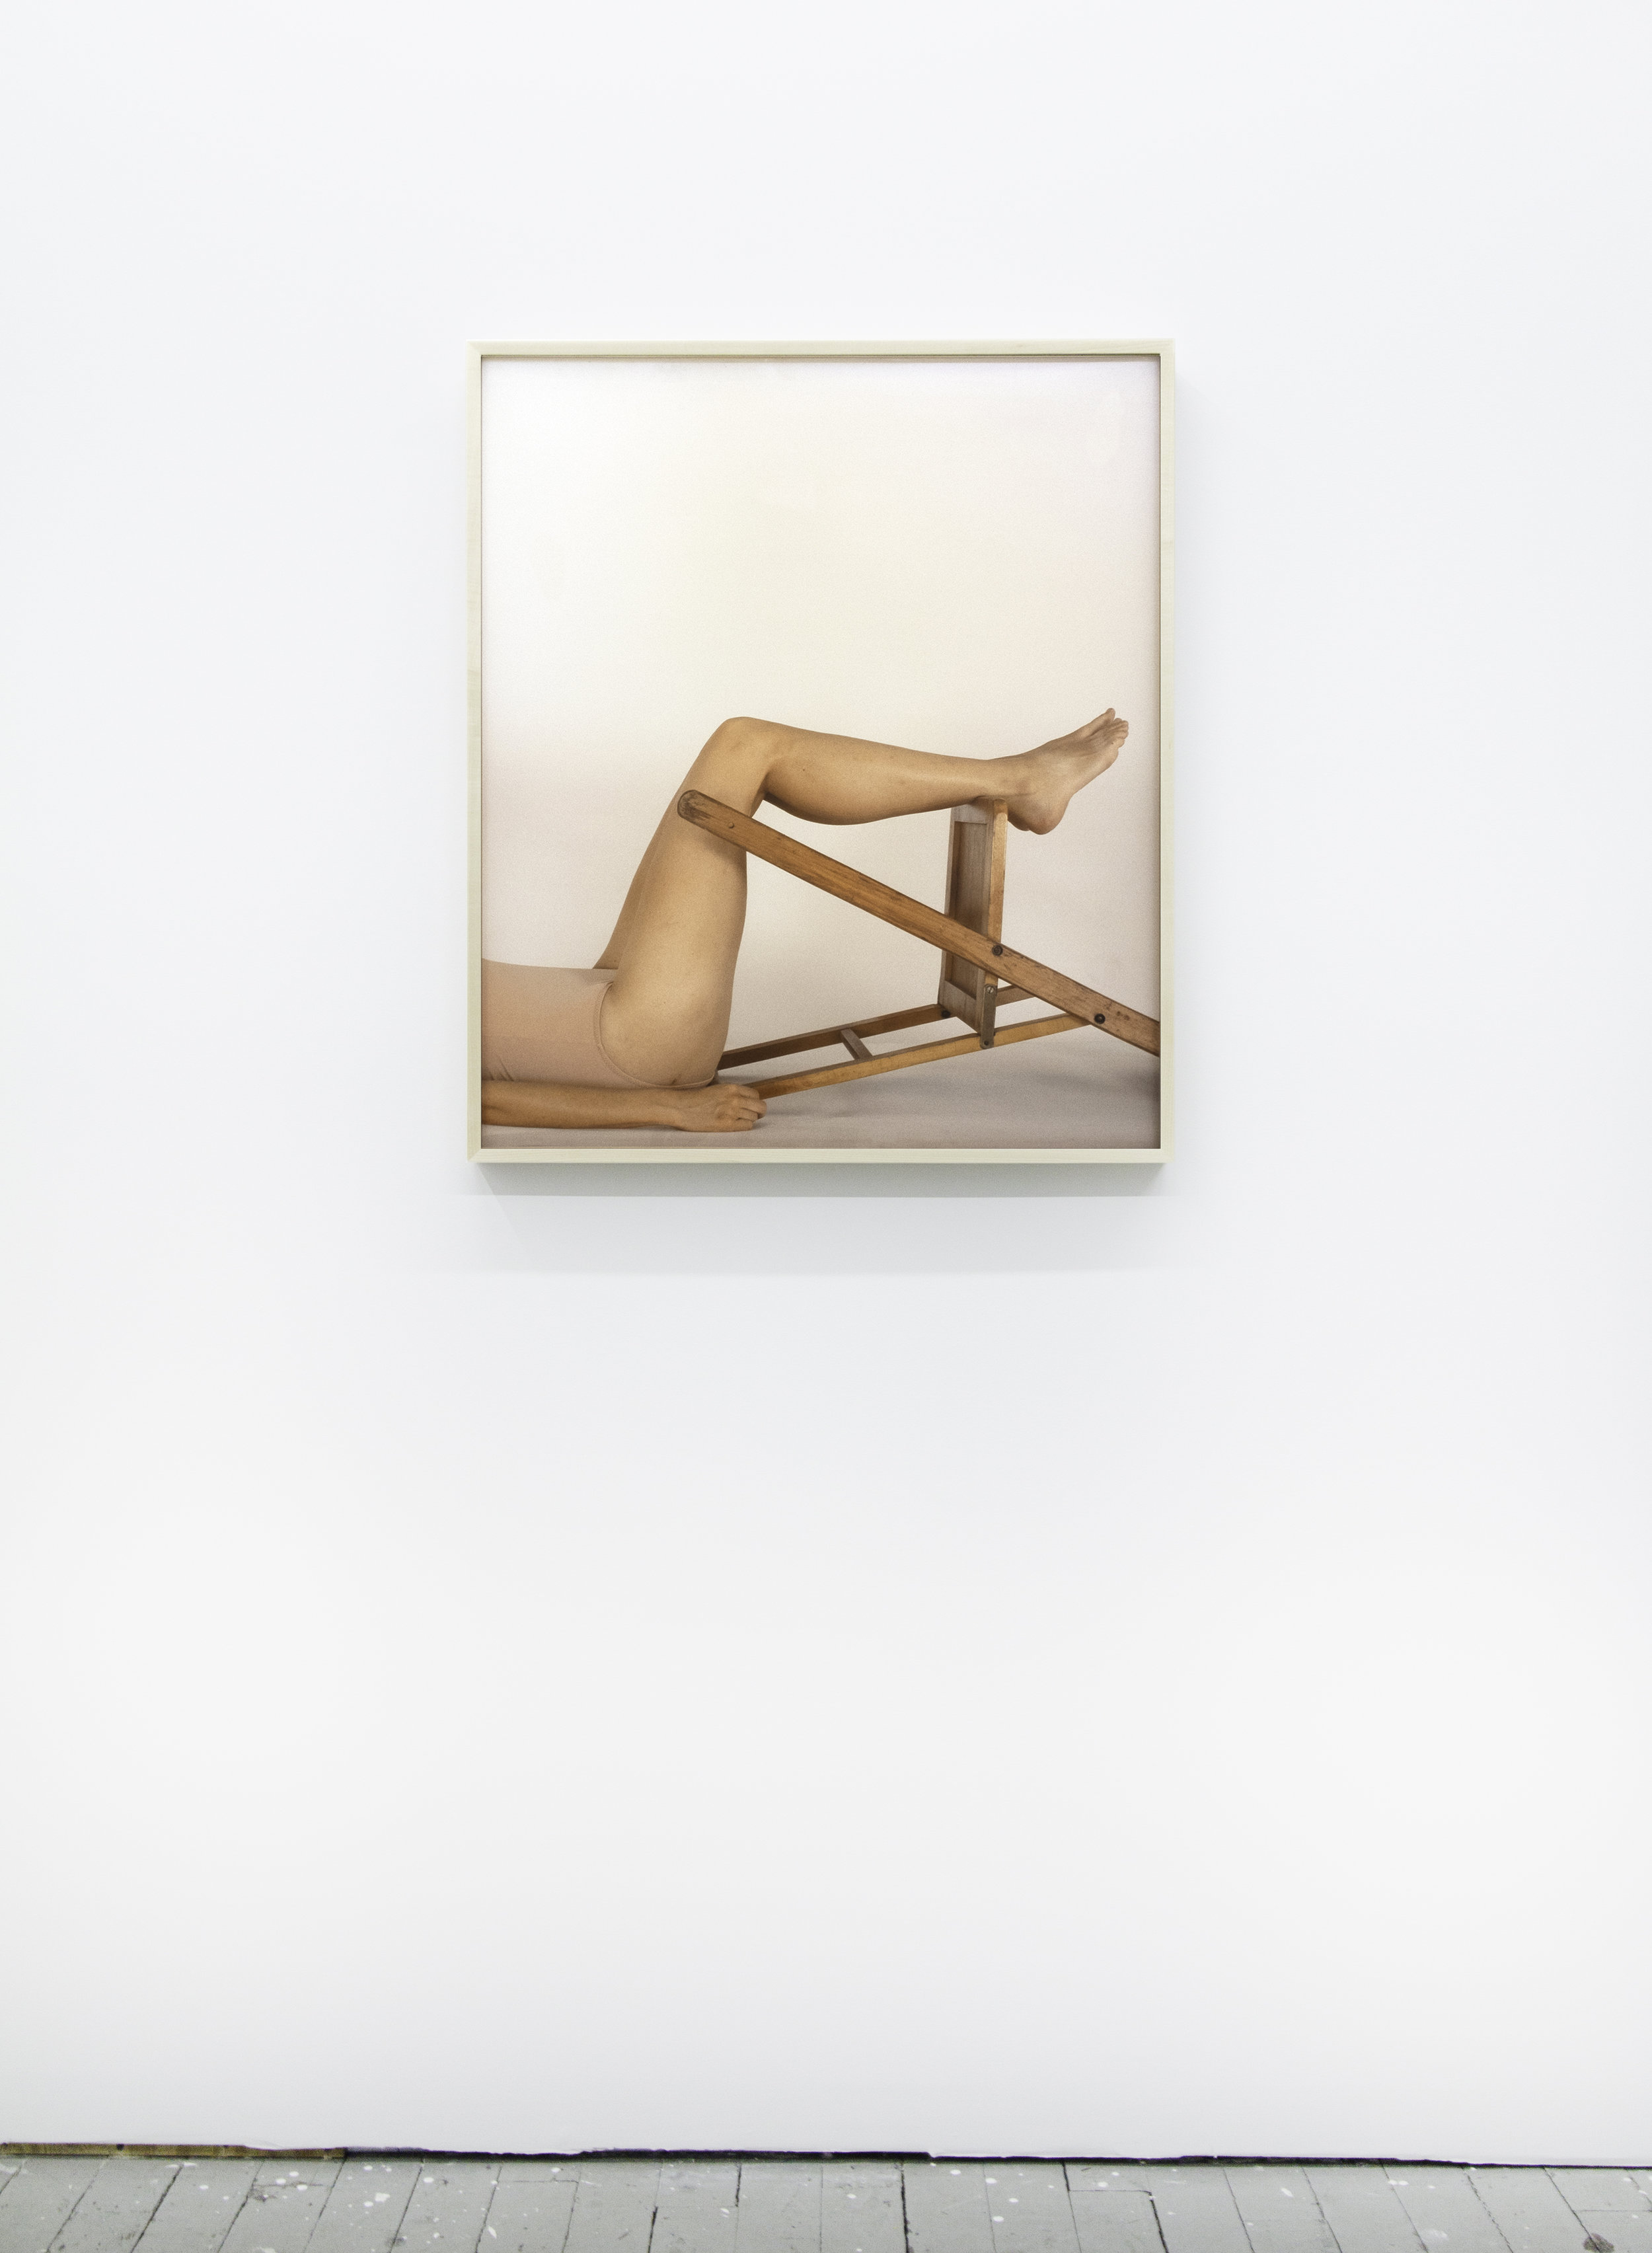 Legs and Chair (Armature) , 2019, archival pigment print, 28.5 x 33.5 inches